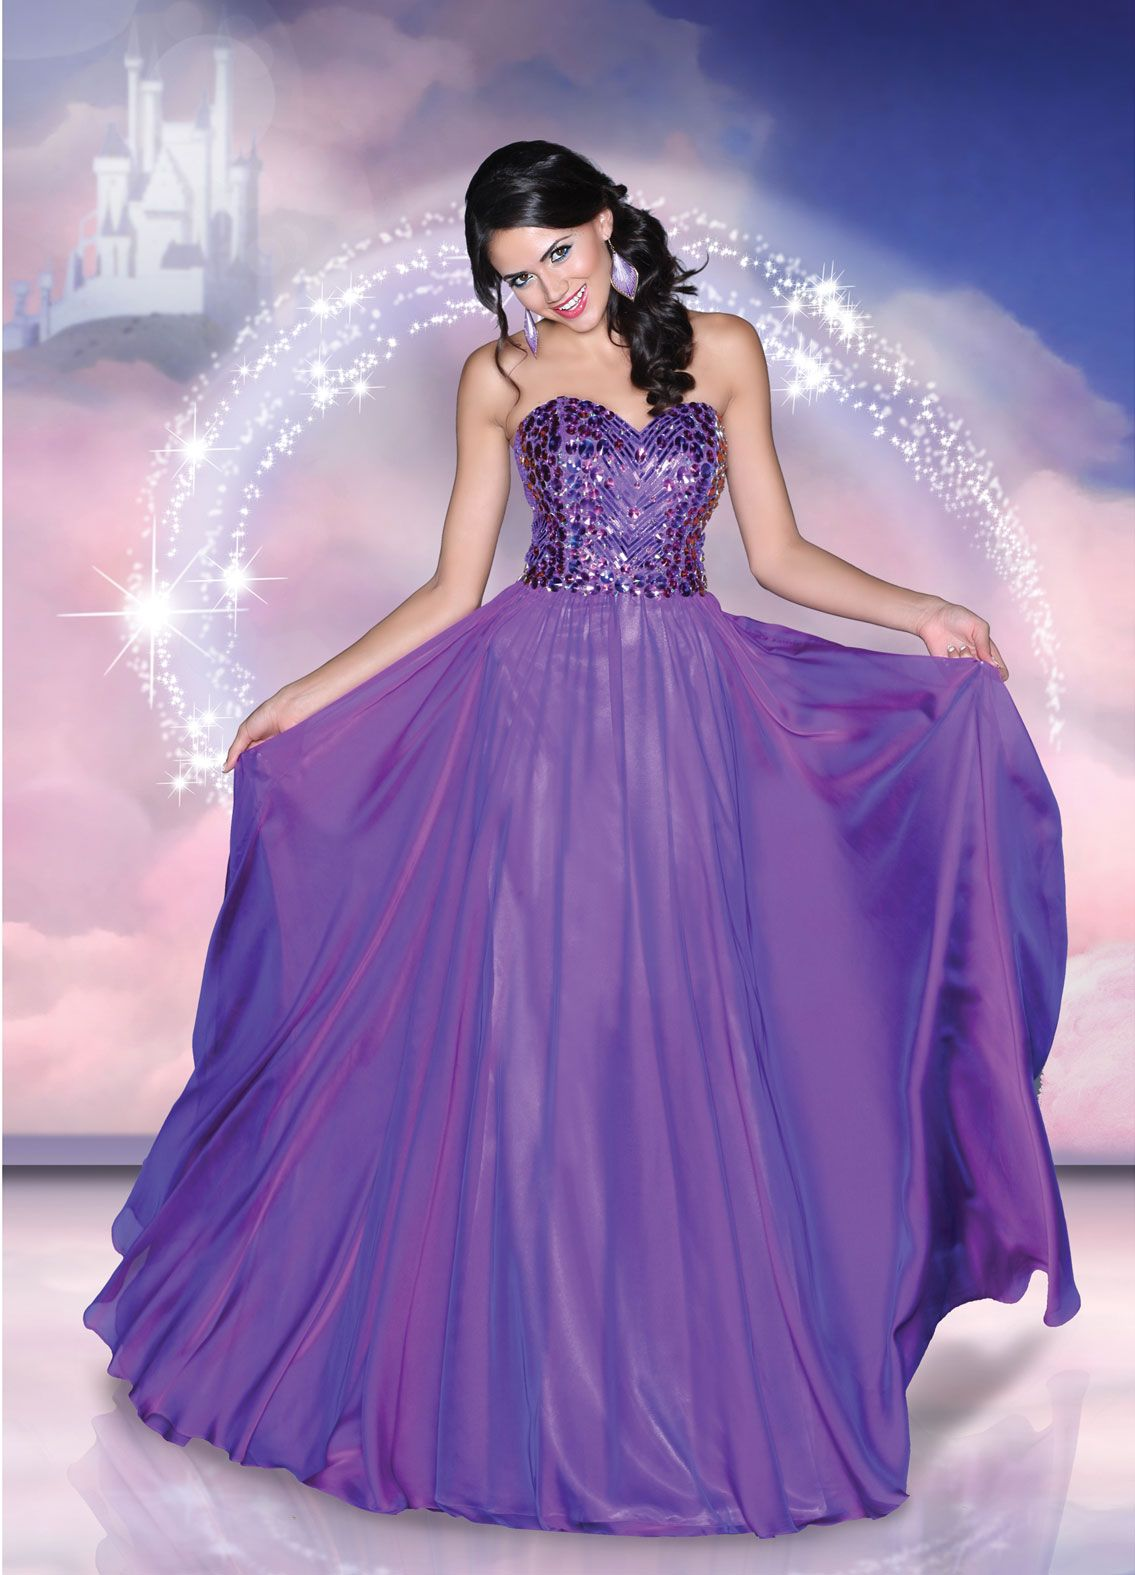 Disney forever enchanted prom dresses prom pinterest prom